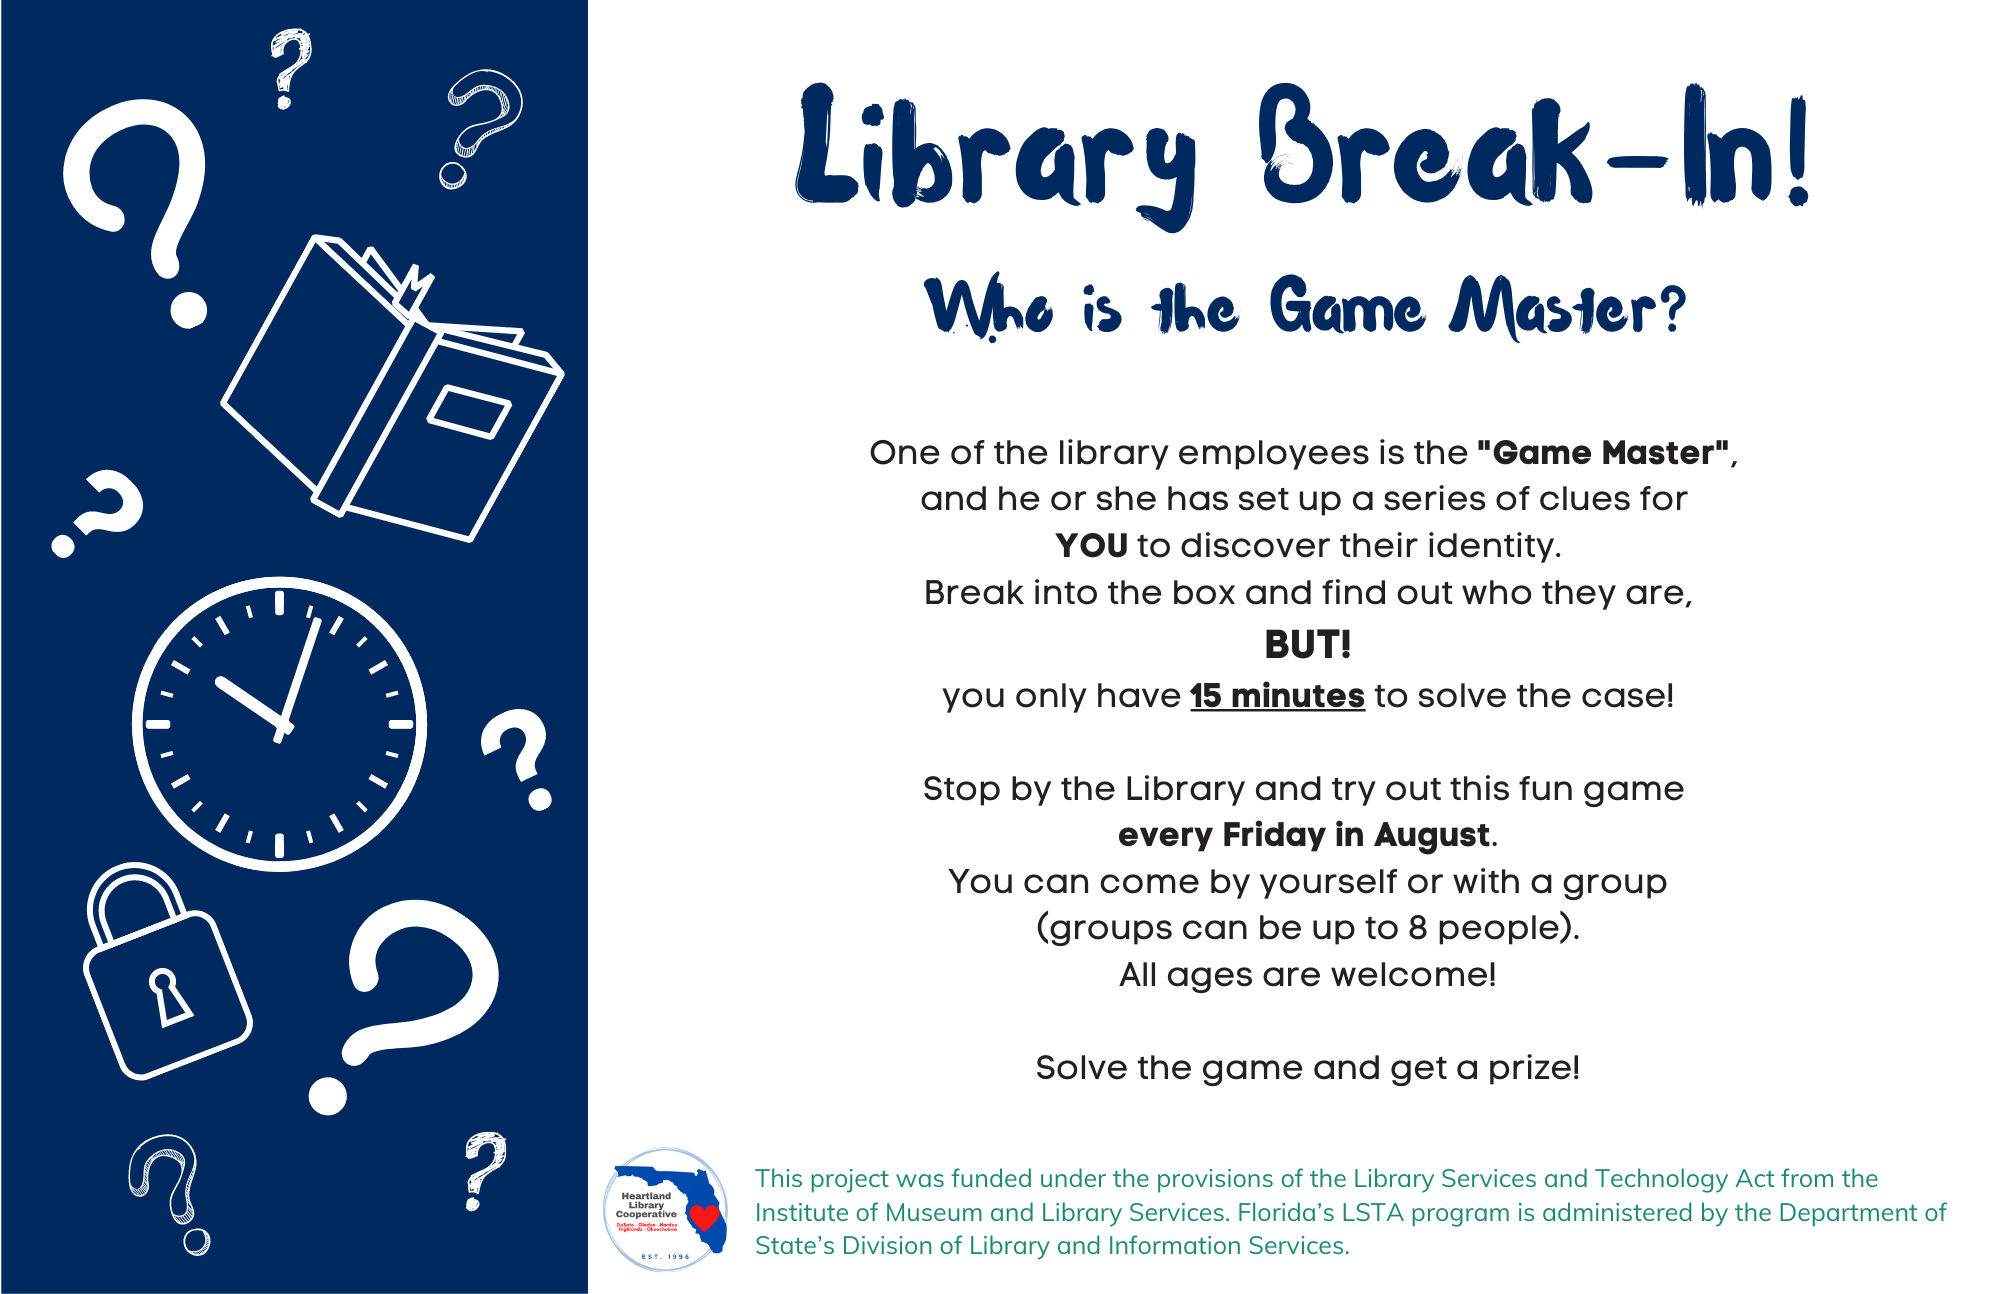 Library Break-In! Who is the Game Master?